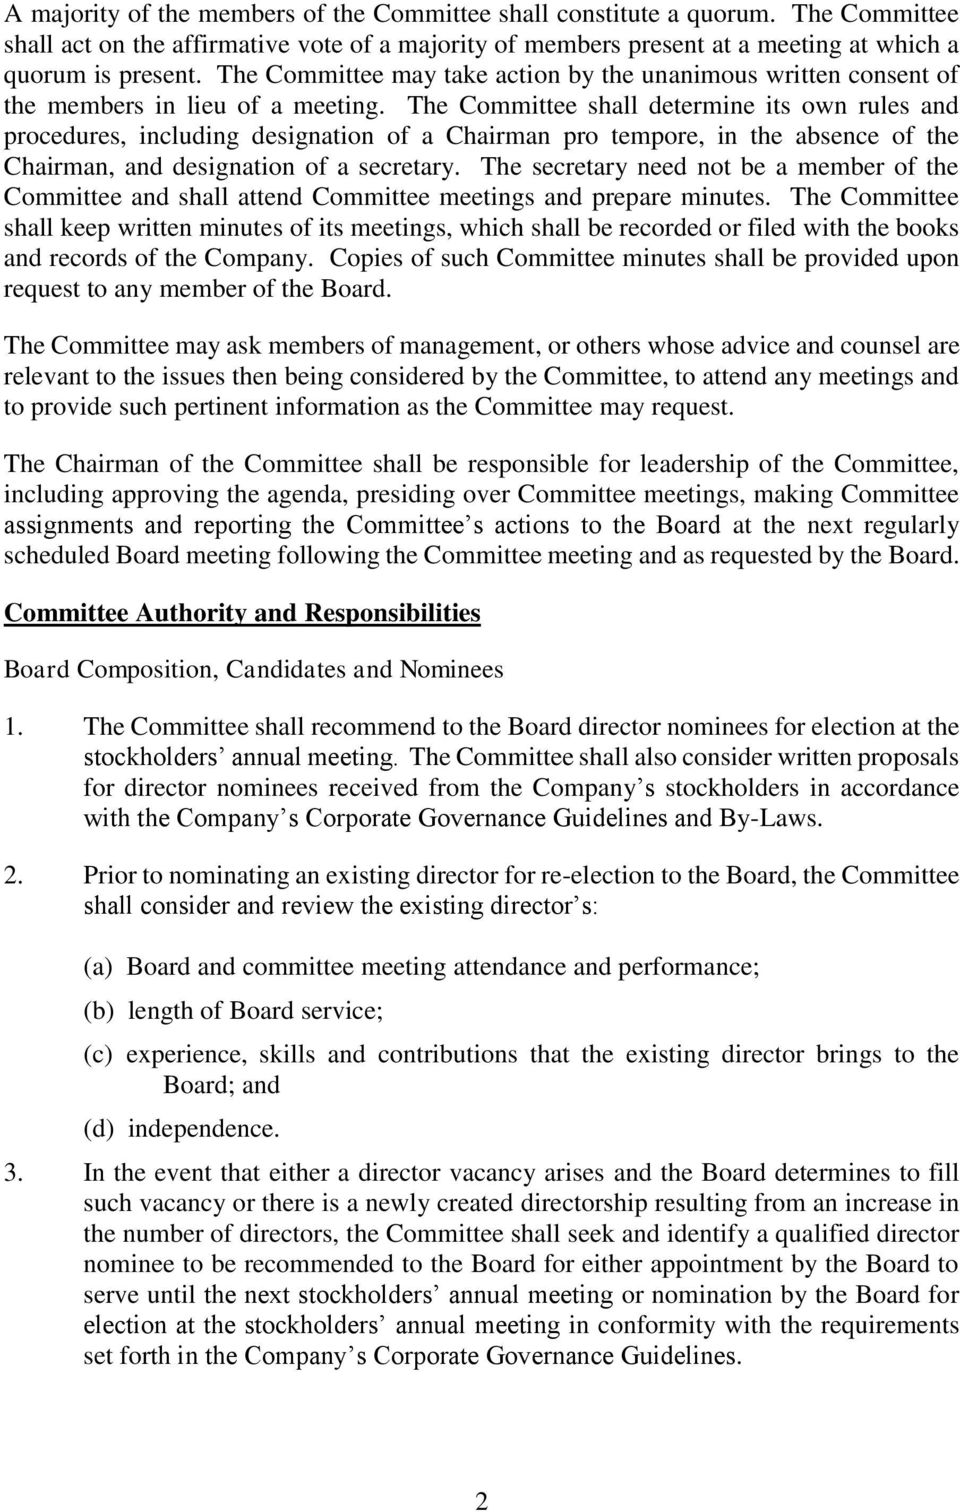 The Committee shall determine its own rules and procedures, including designation of a Chairman pro tempore, in the absence of the Chairman, and designation of a secretary.